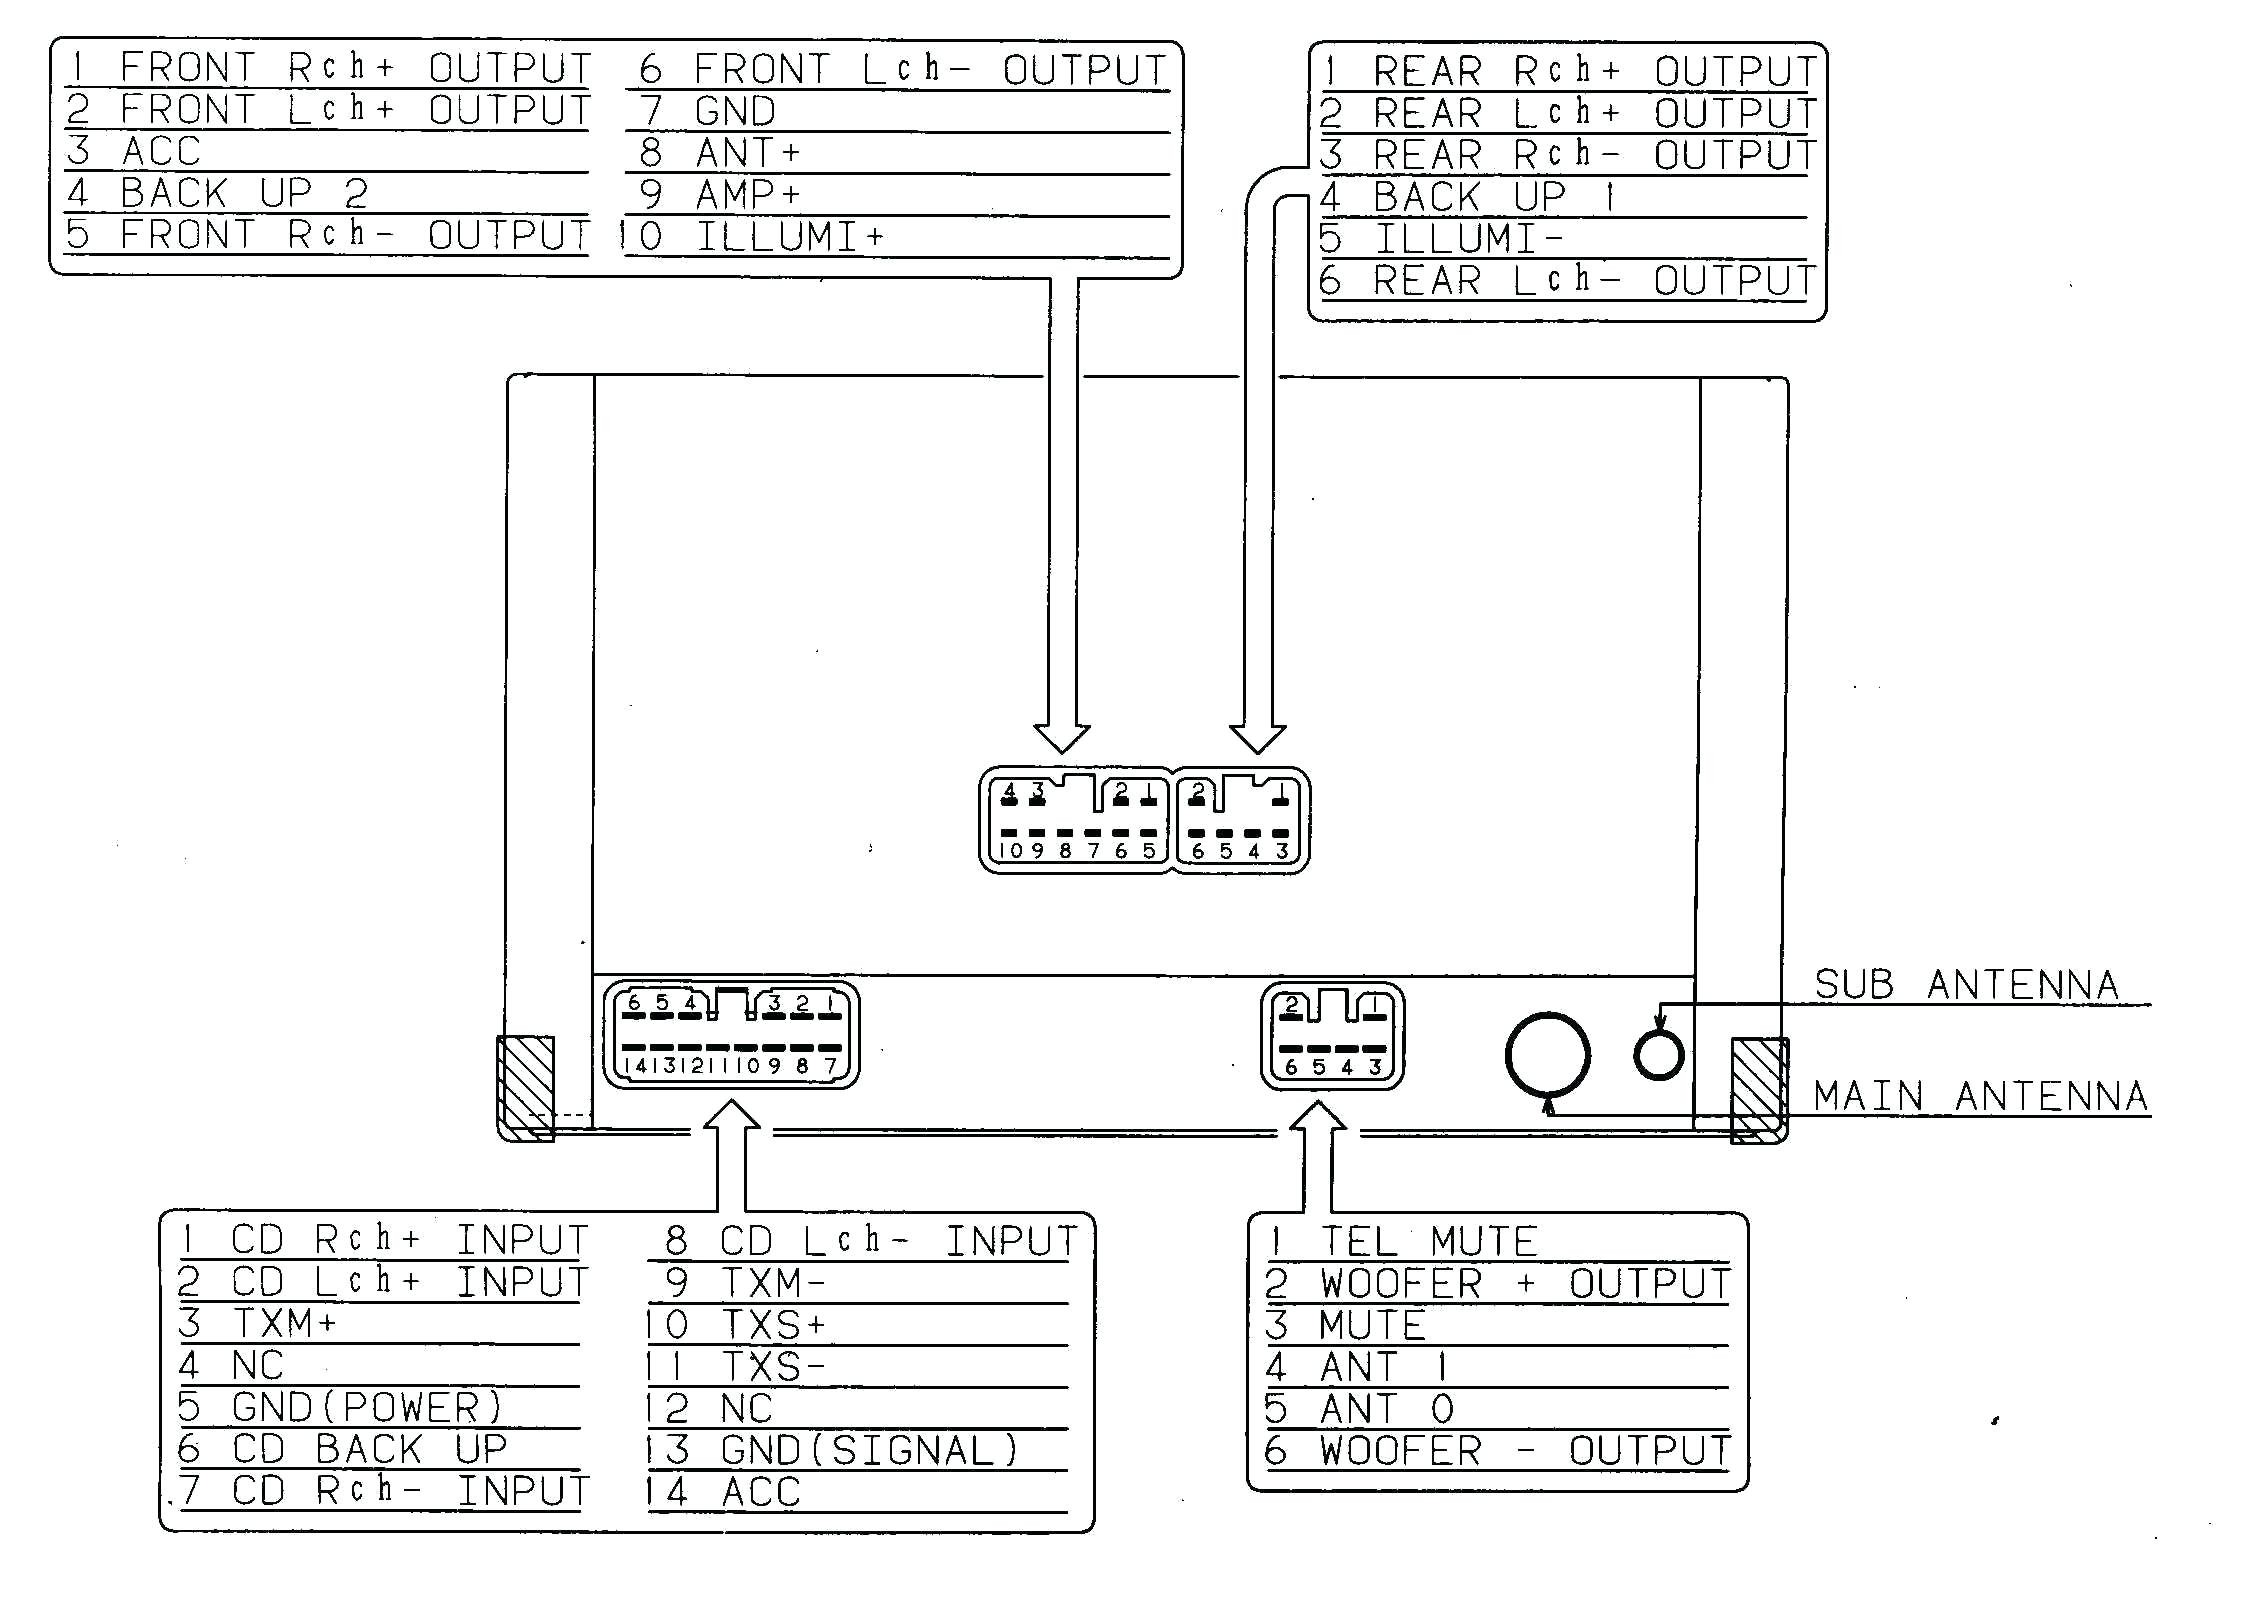 Honda Element 2003 Radio Wiring Diagram Simple Detailed 2006 Pioneer Car Stereo Free Image Electrical Full Size